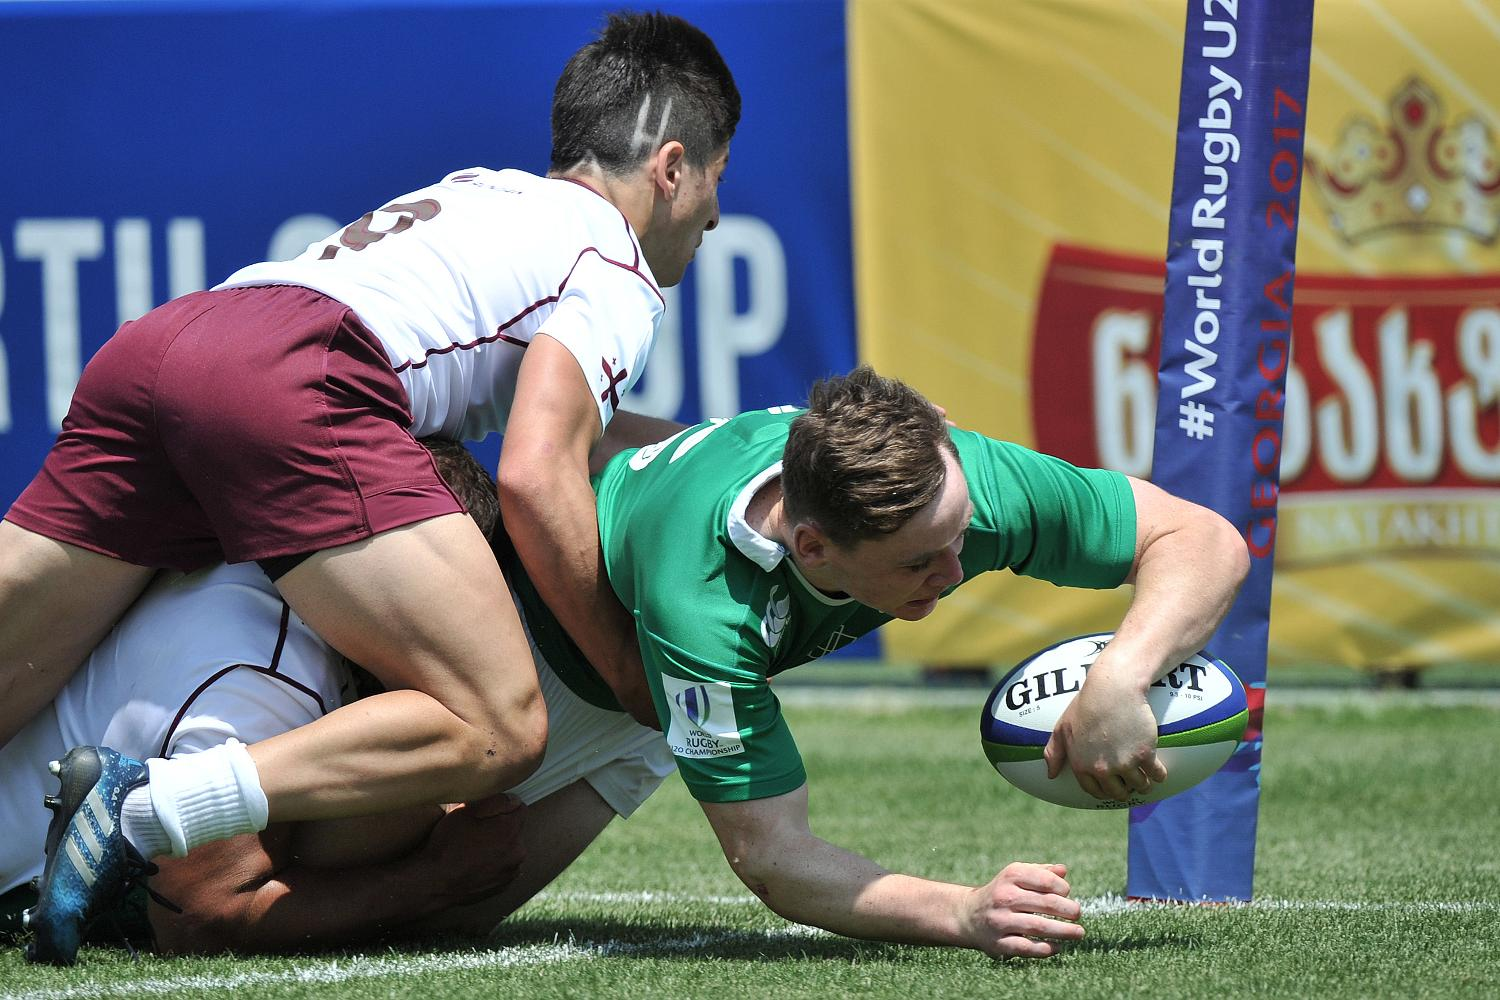 World Rugby U20 Championship 2017: Ireland v Georgia